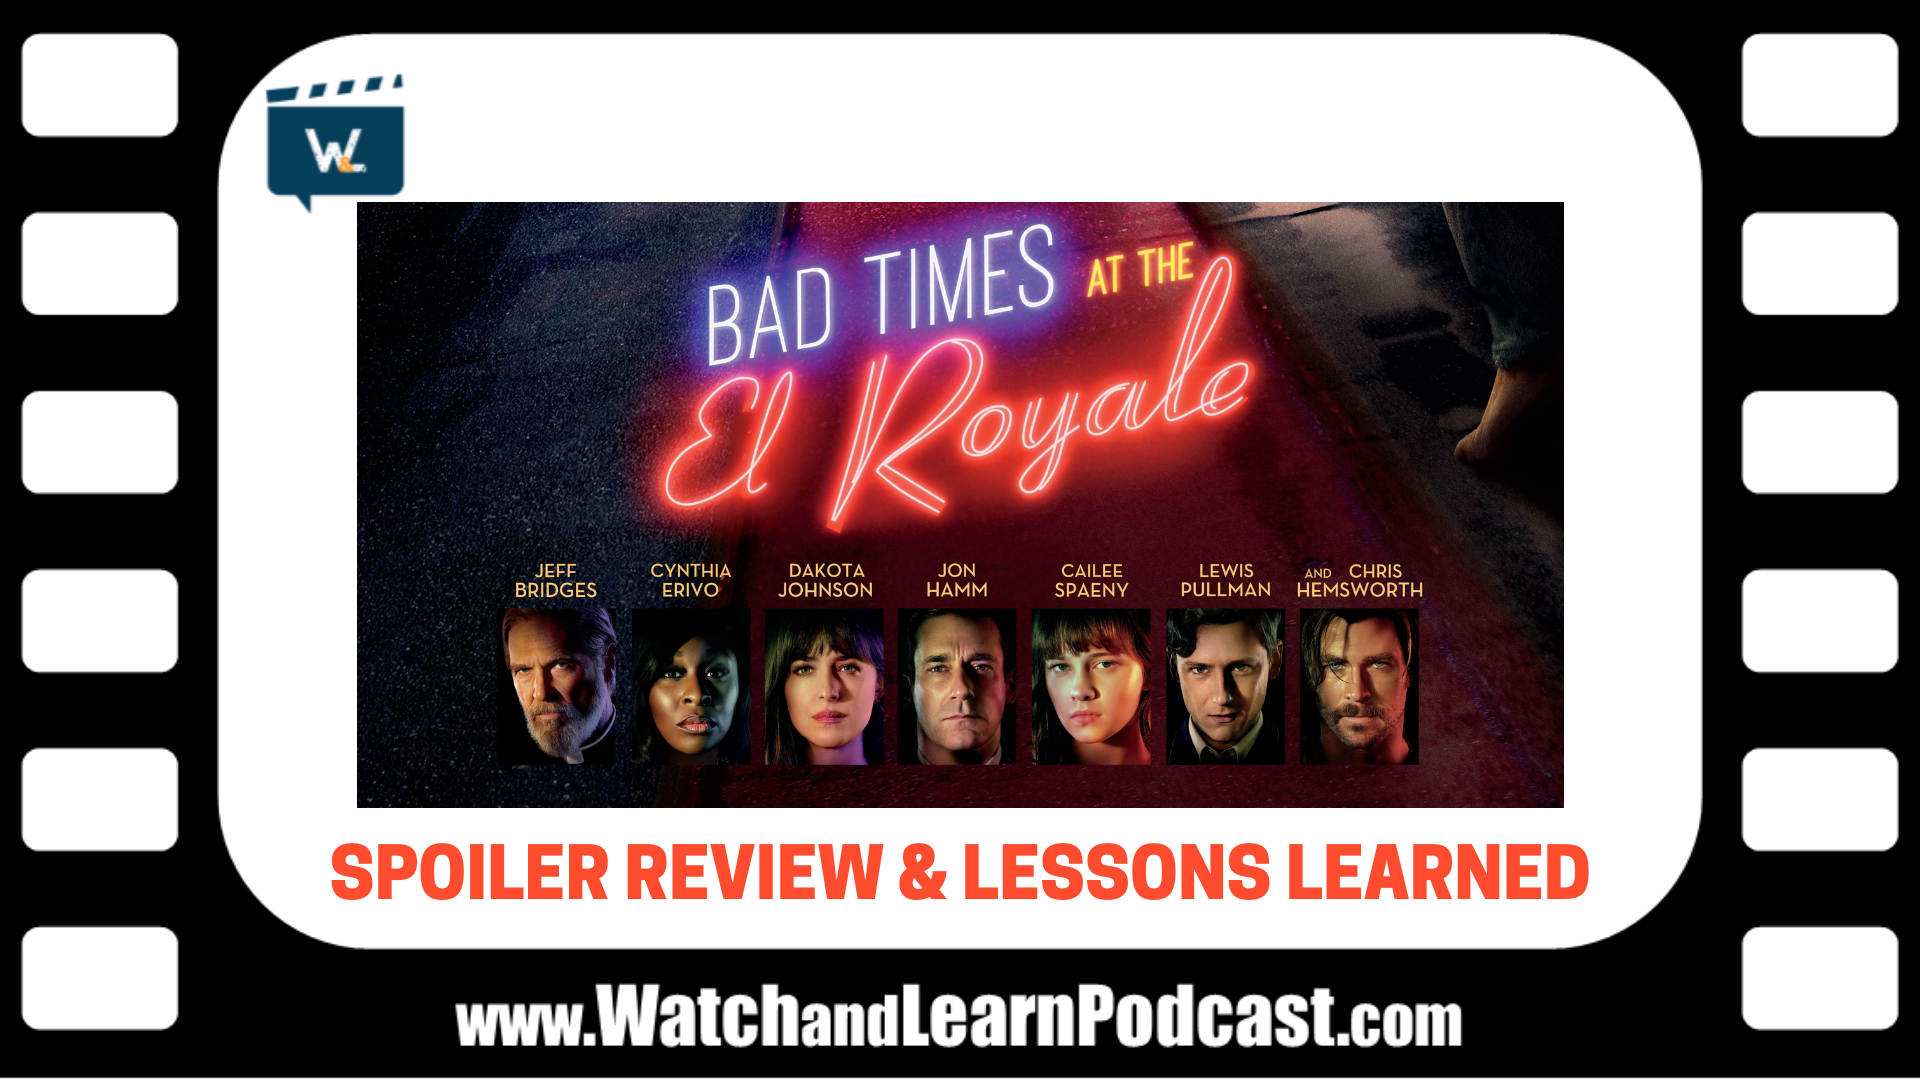 Bad Times at the El Royale Spoiler Review and Lessons Learned